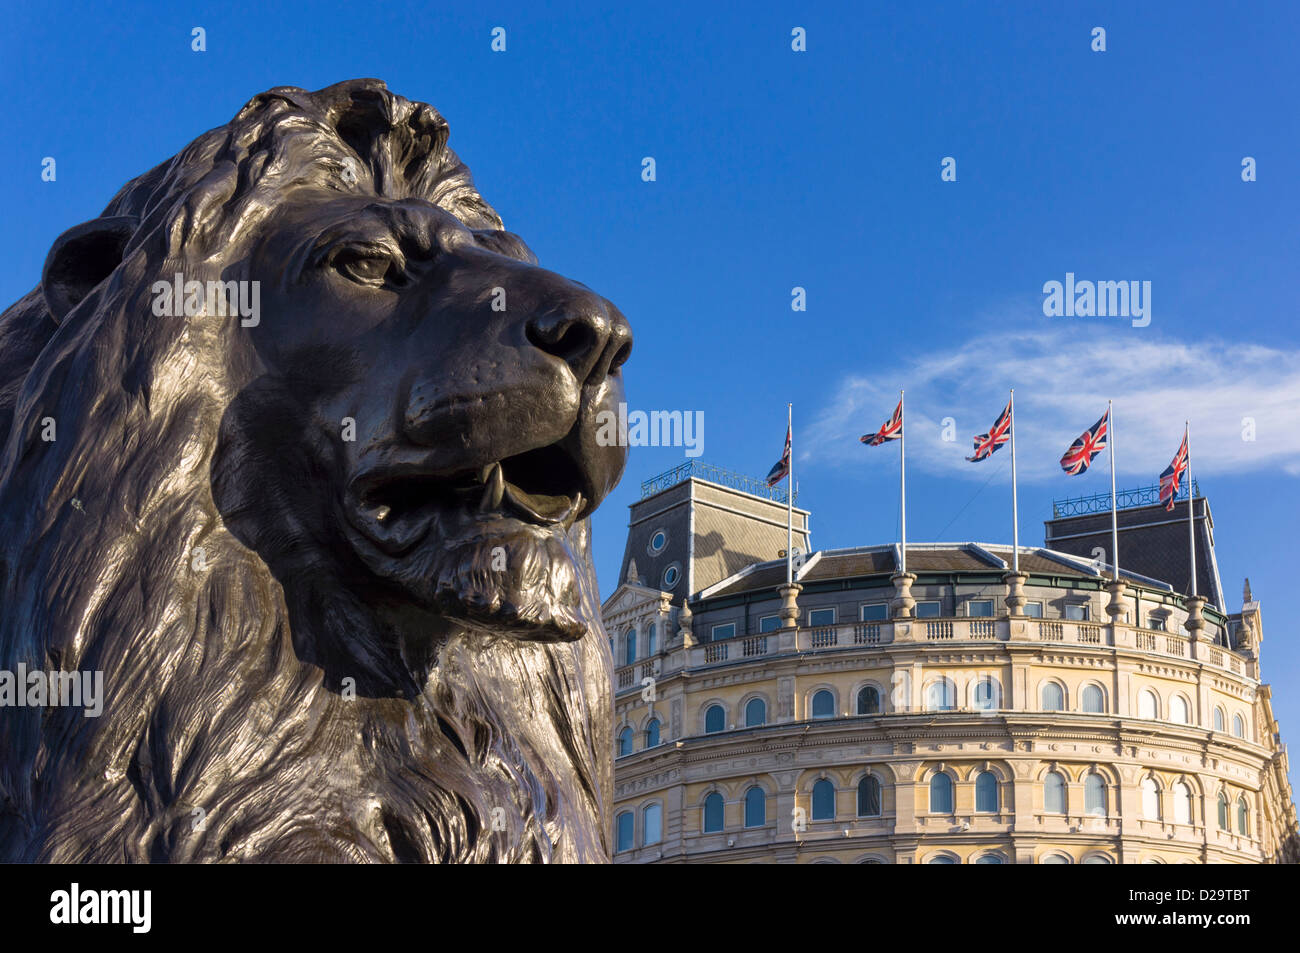 Lion in Trafalgar Square, London, England, UK - with Union Jack flags behind - Stock Image